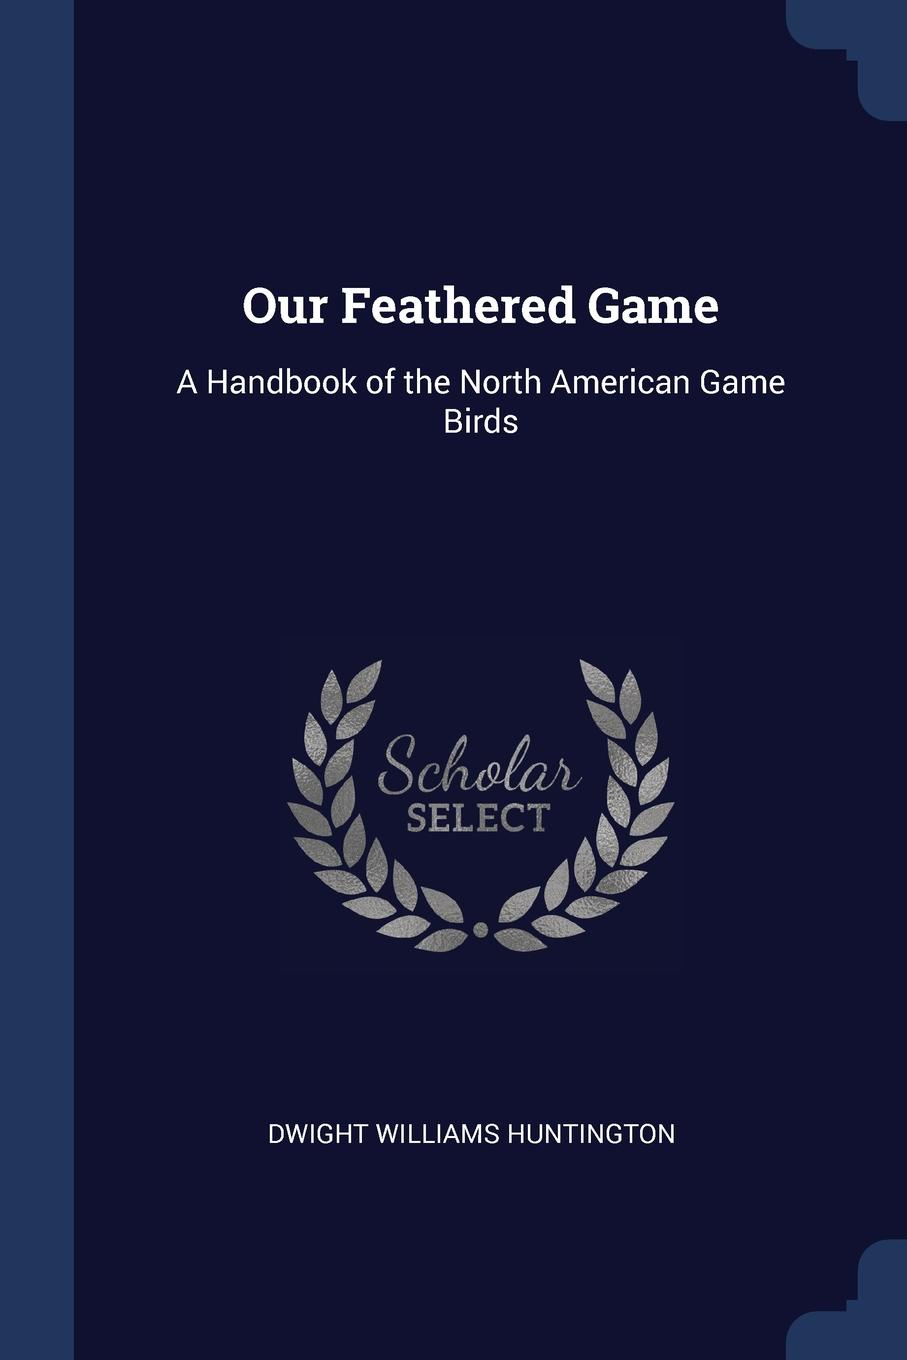 Dwight Williams Huntington Our Feathered Game. A Handbook of the North American Game Birds